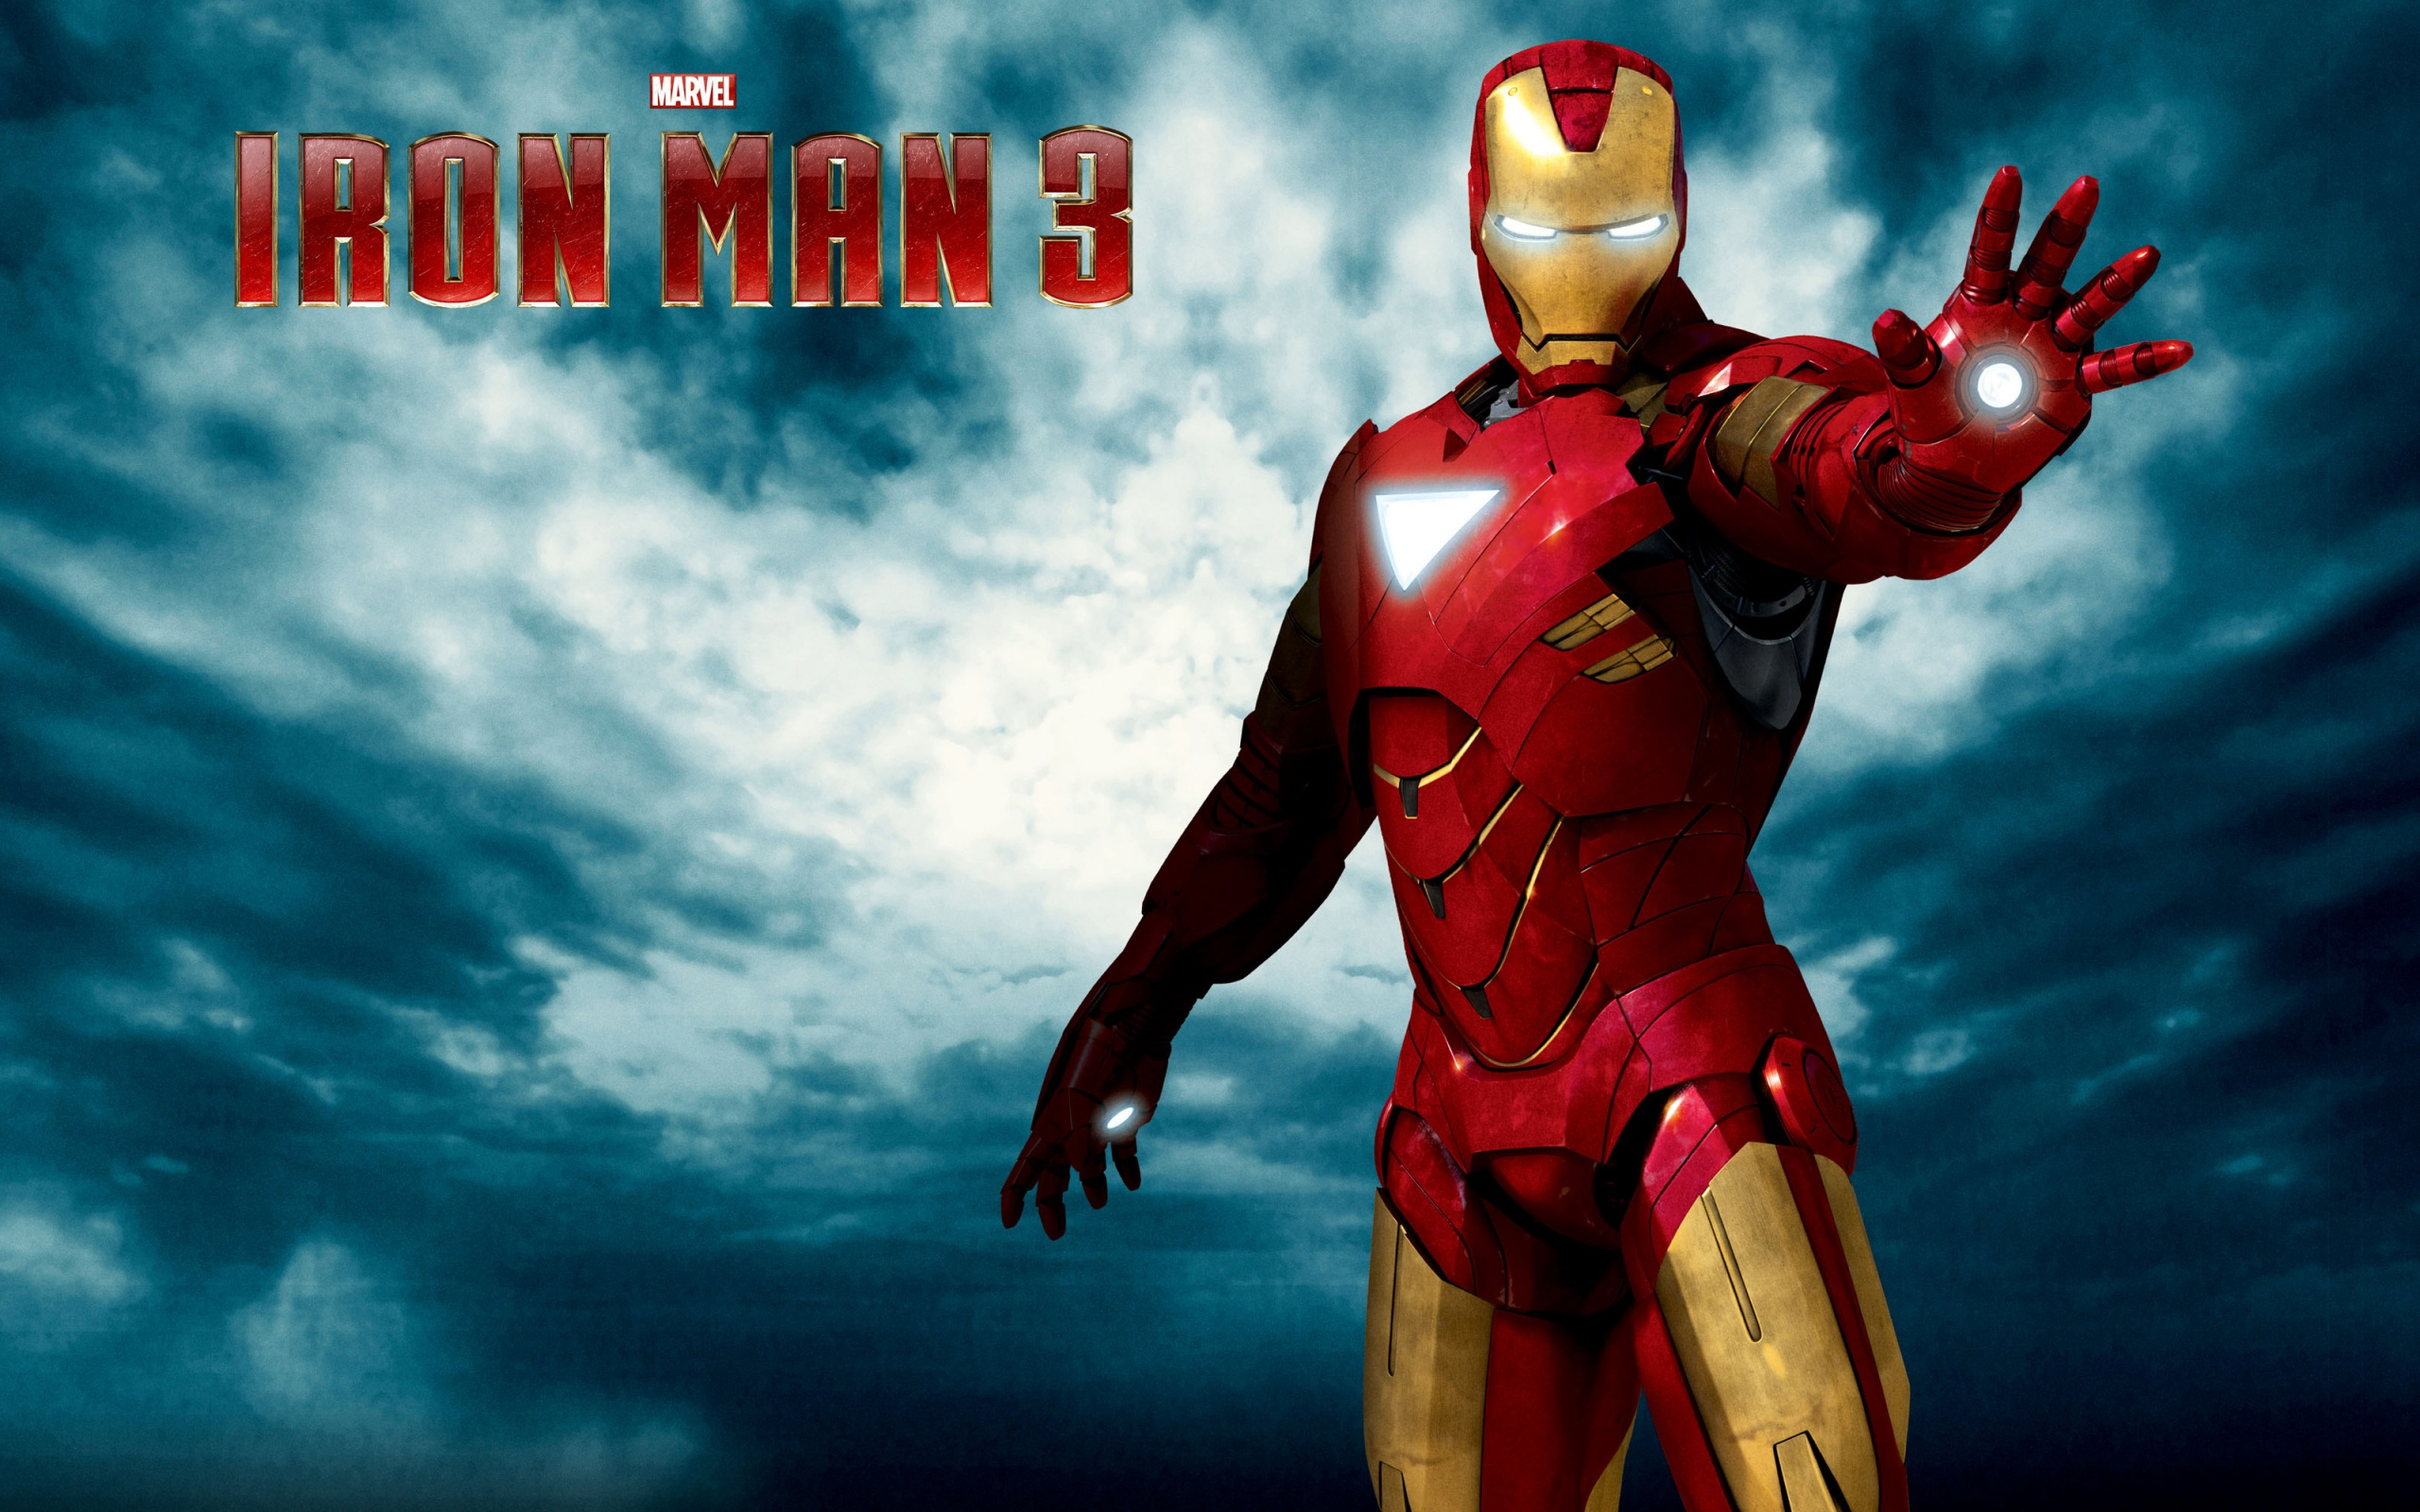 iron man 3 wallpapers in jpg format for free download